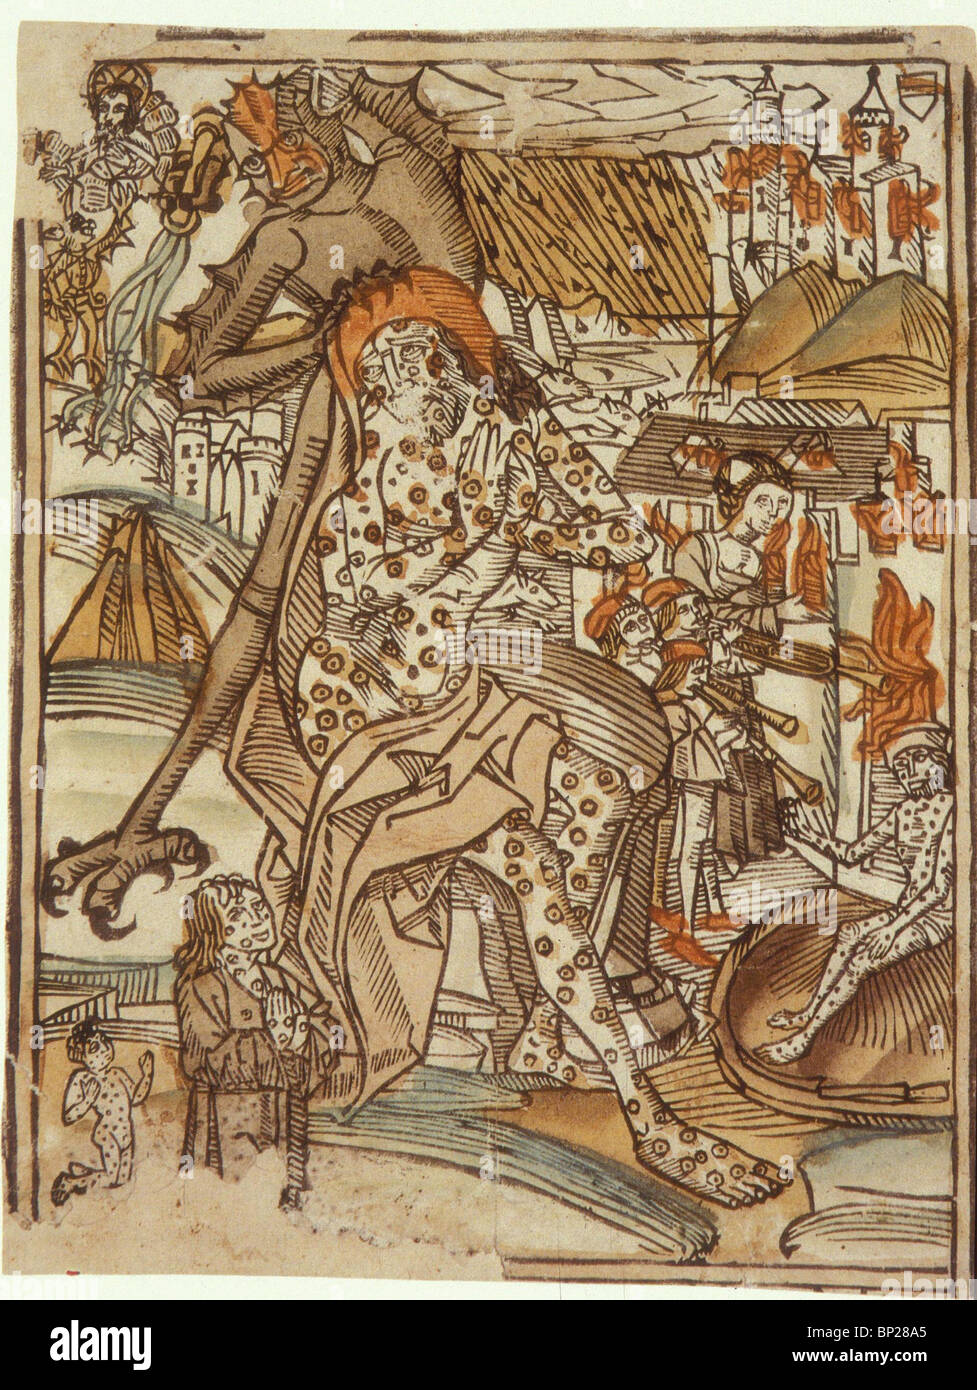 1996. JOB - WOODCUT FROM GERMANY, C. 1537 - Stock Image